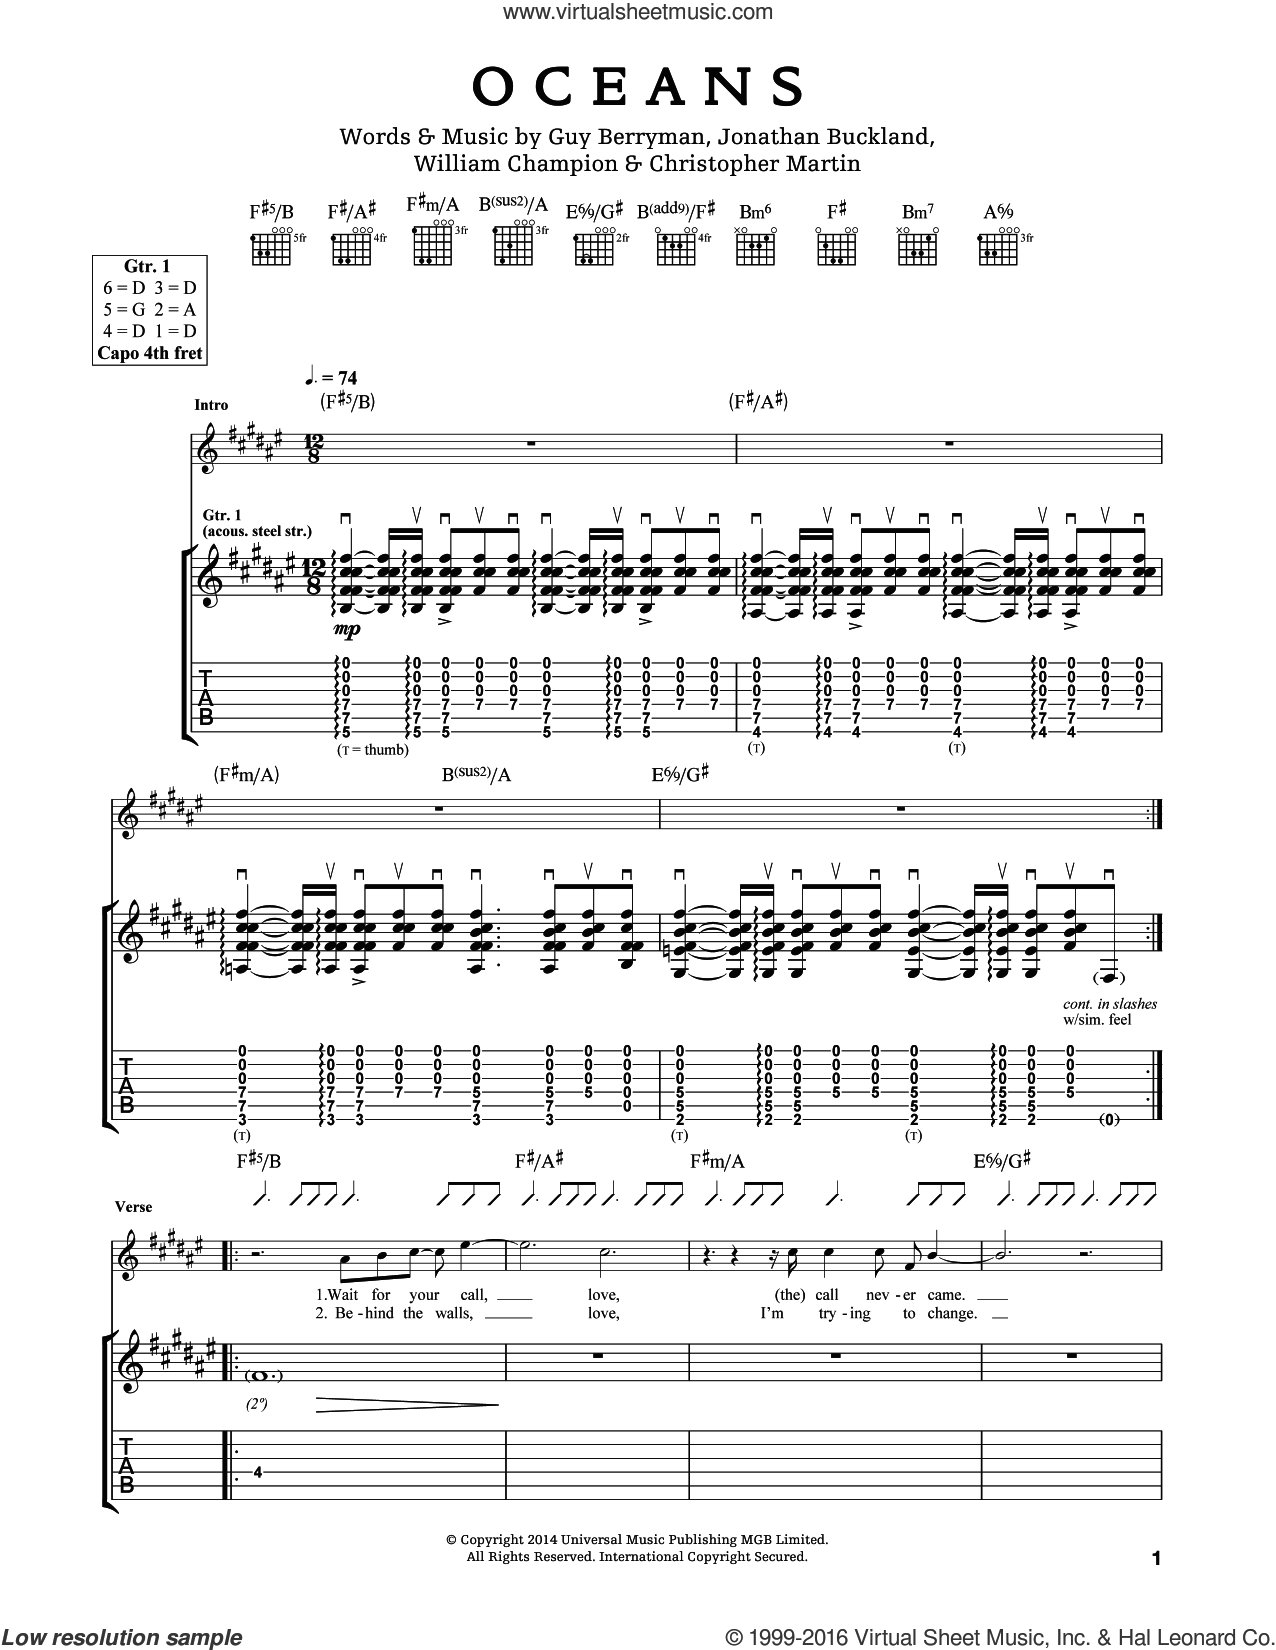 Oceans sheet music for guitar (tablature) by Coldplay, Chris Martin, Guy Berryman, Jon Buckland and Will Champion, intermediate